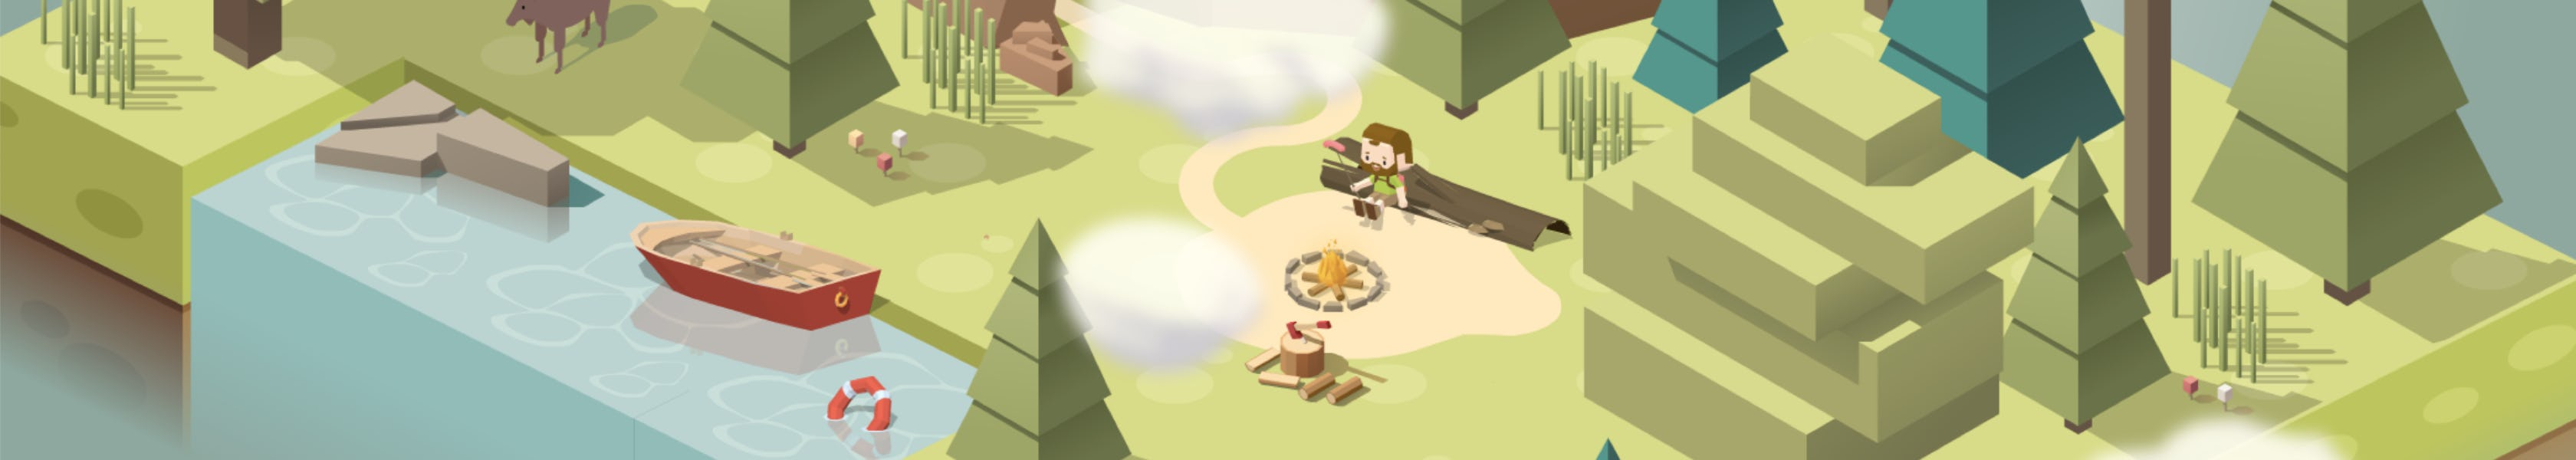 Cave exploration's game scenario with mountains, clouds, lake and trees. The protagonist is watching the fire pit at the center of scenario.